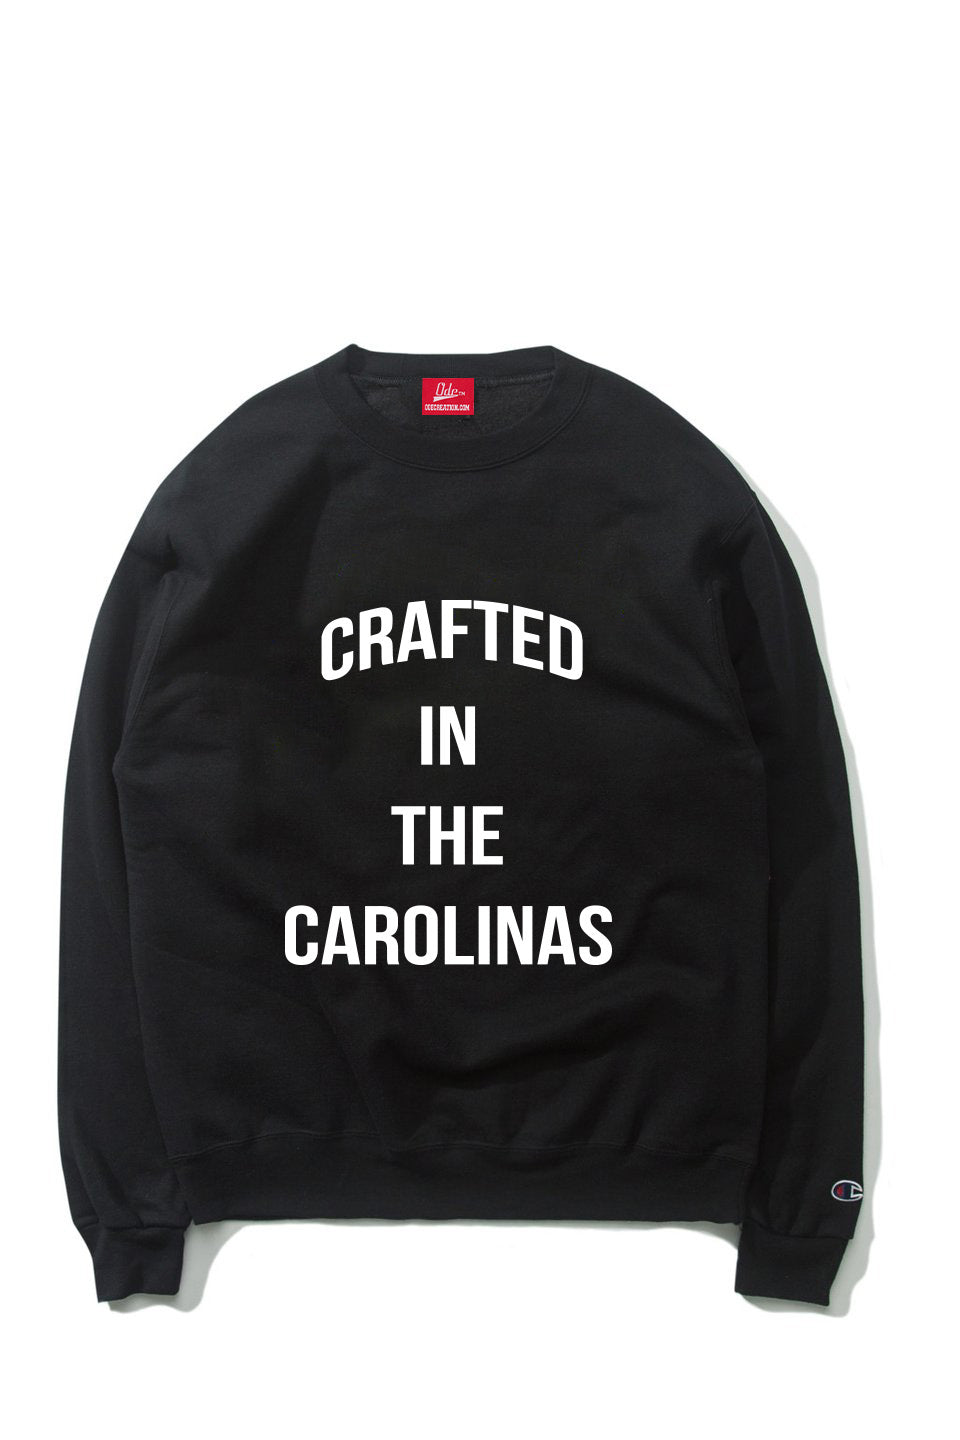 The Crafted In the Carolinas Crewneck X Champion - Black